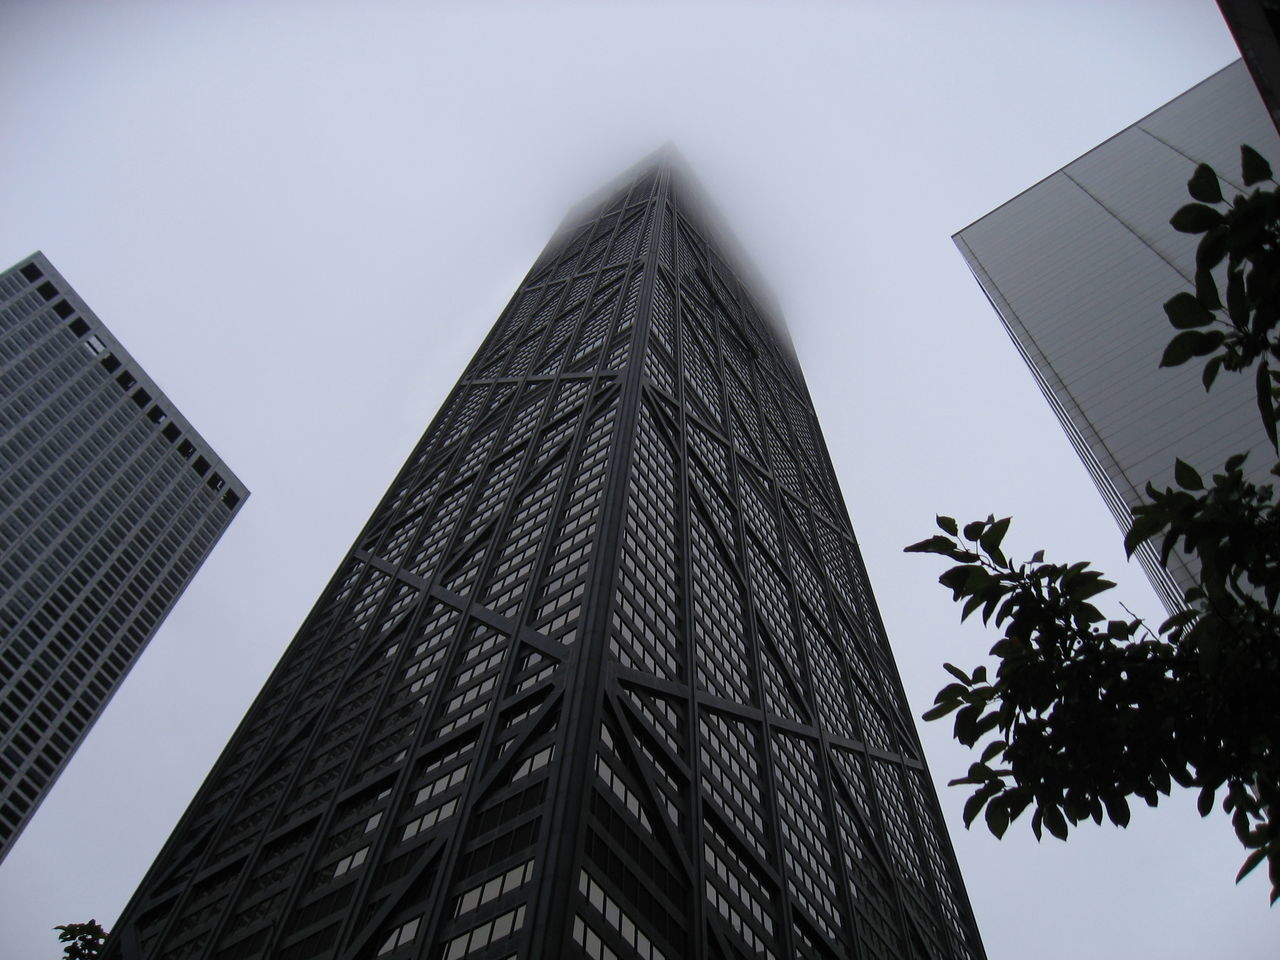 Architecture Building Chicago Chicago Architecture Fog Hangcocktower Skyscraper USA